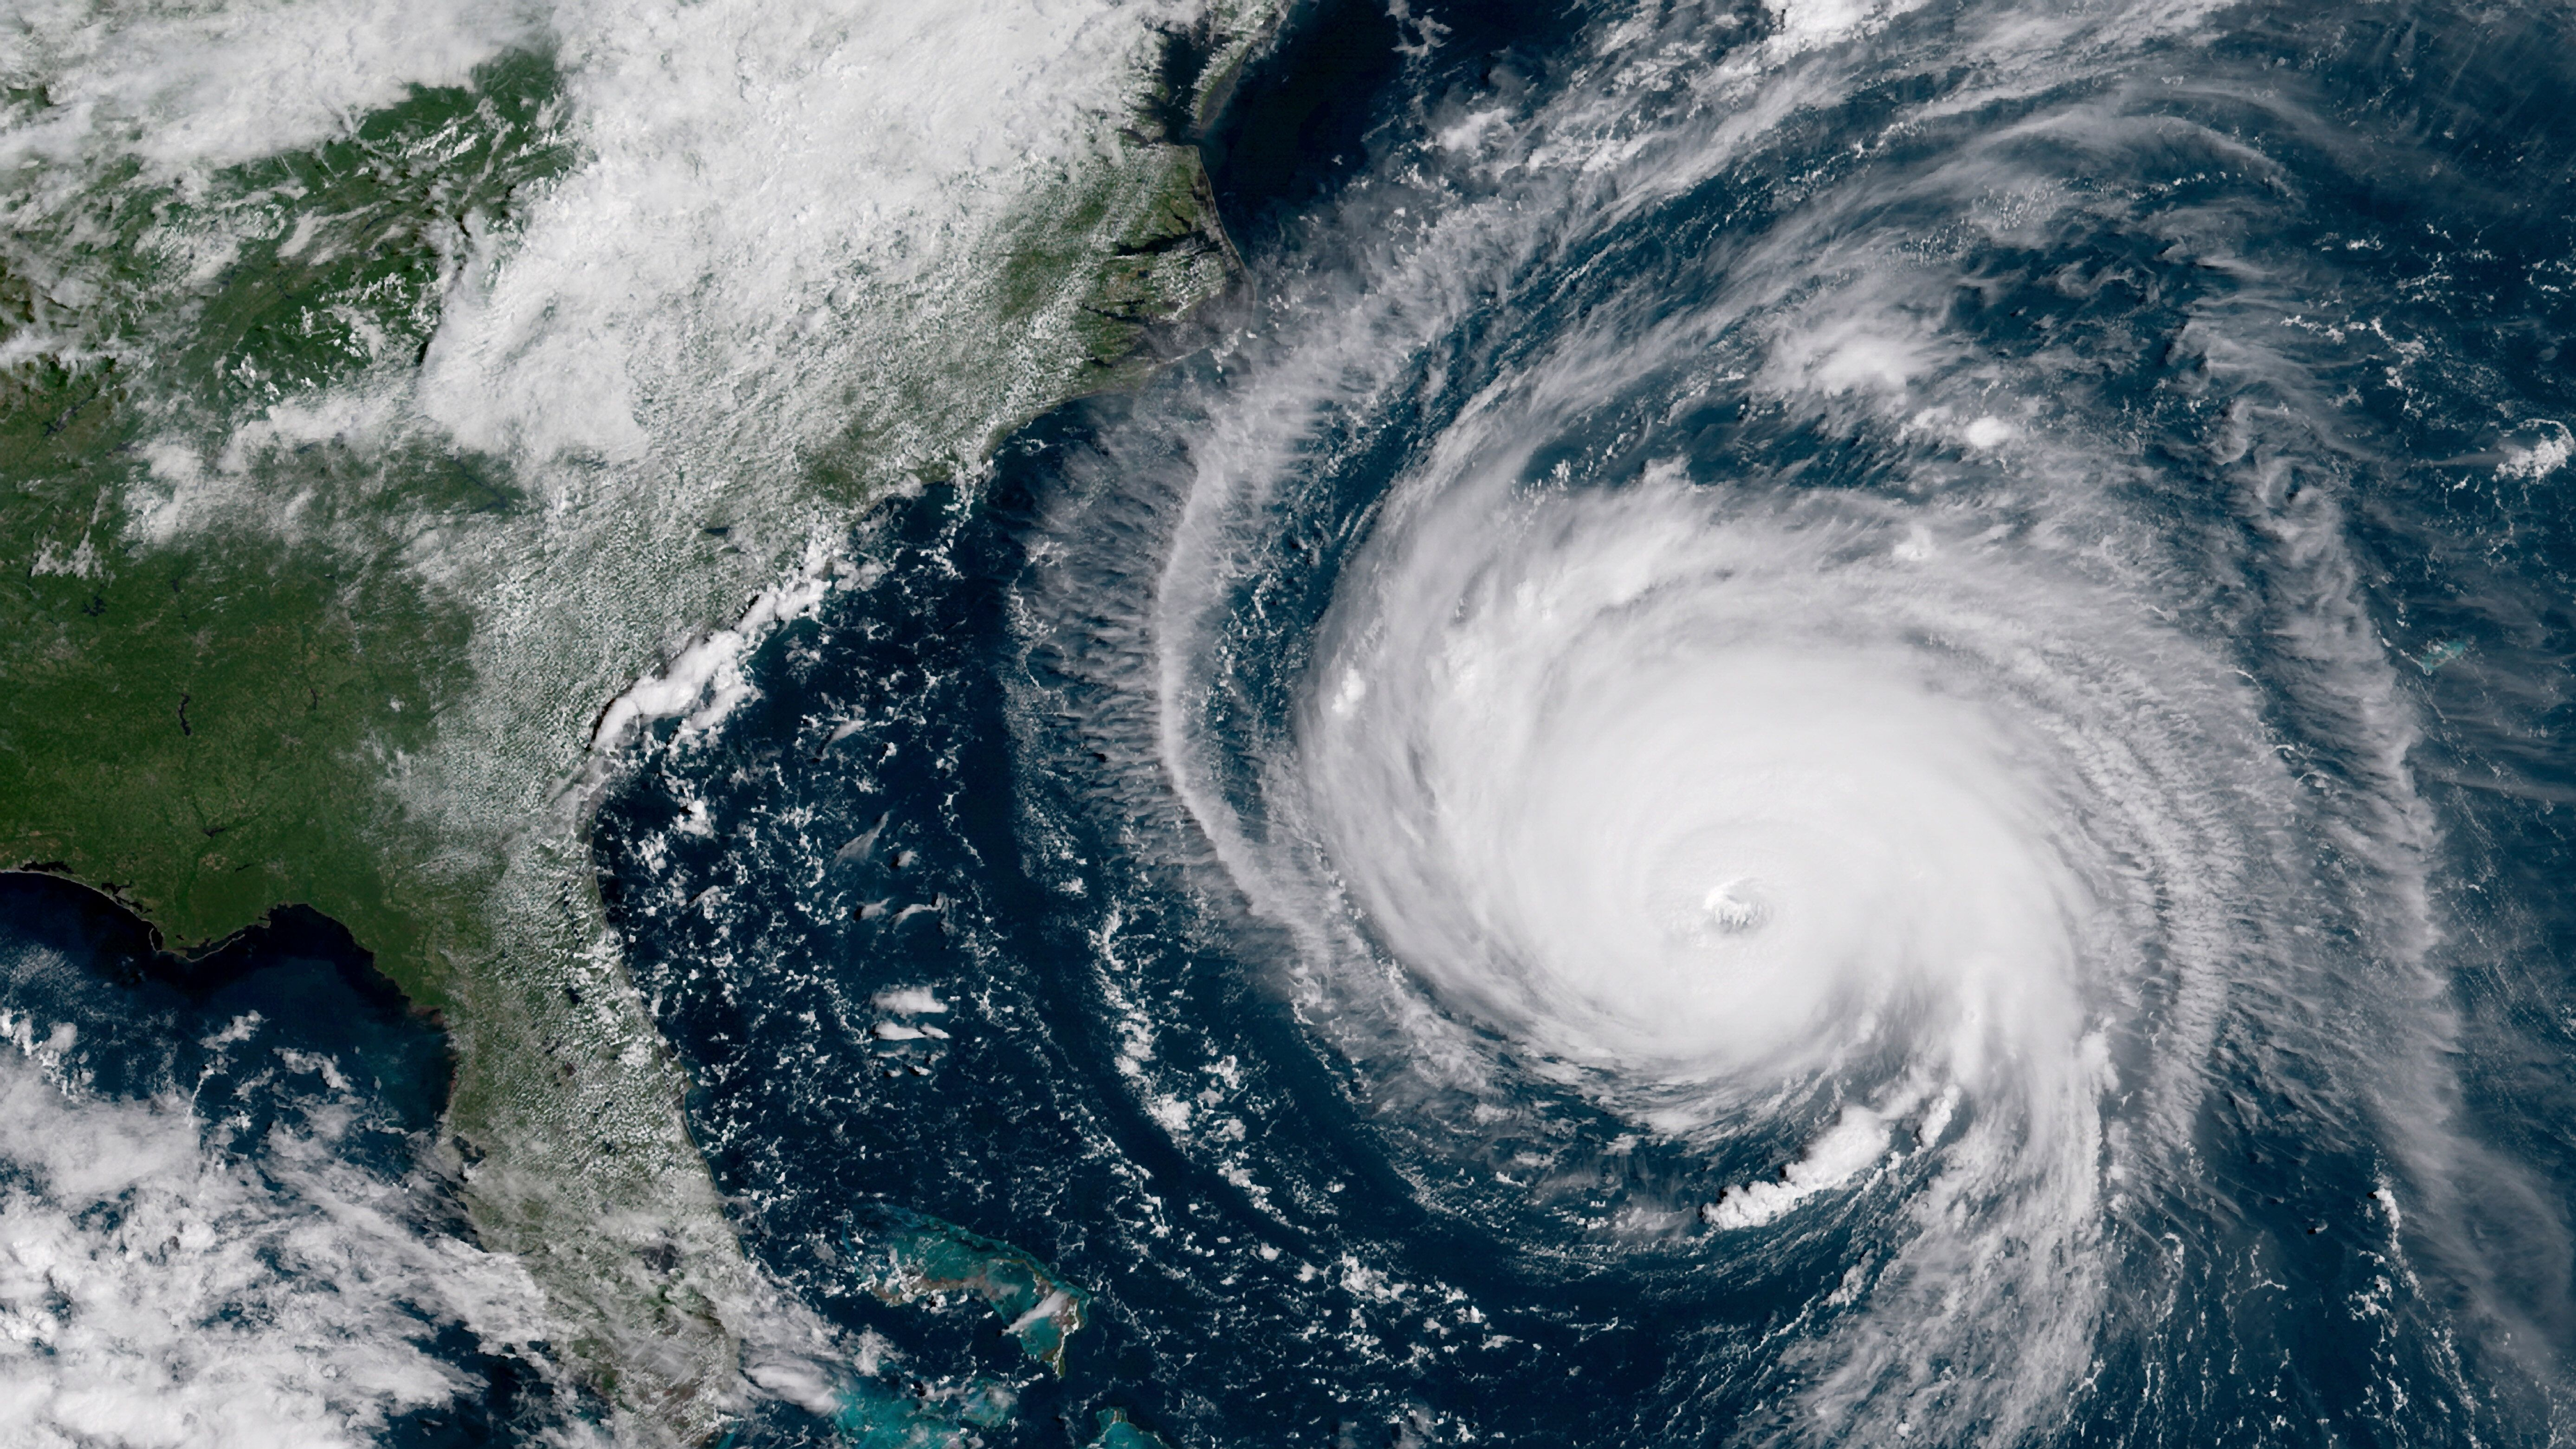 September 12, 2018 - Hurricane Florence moving closer to the coast of the Southeastern United States with a well-defined eye and outermost cloud bands.